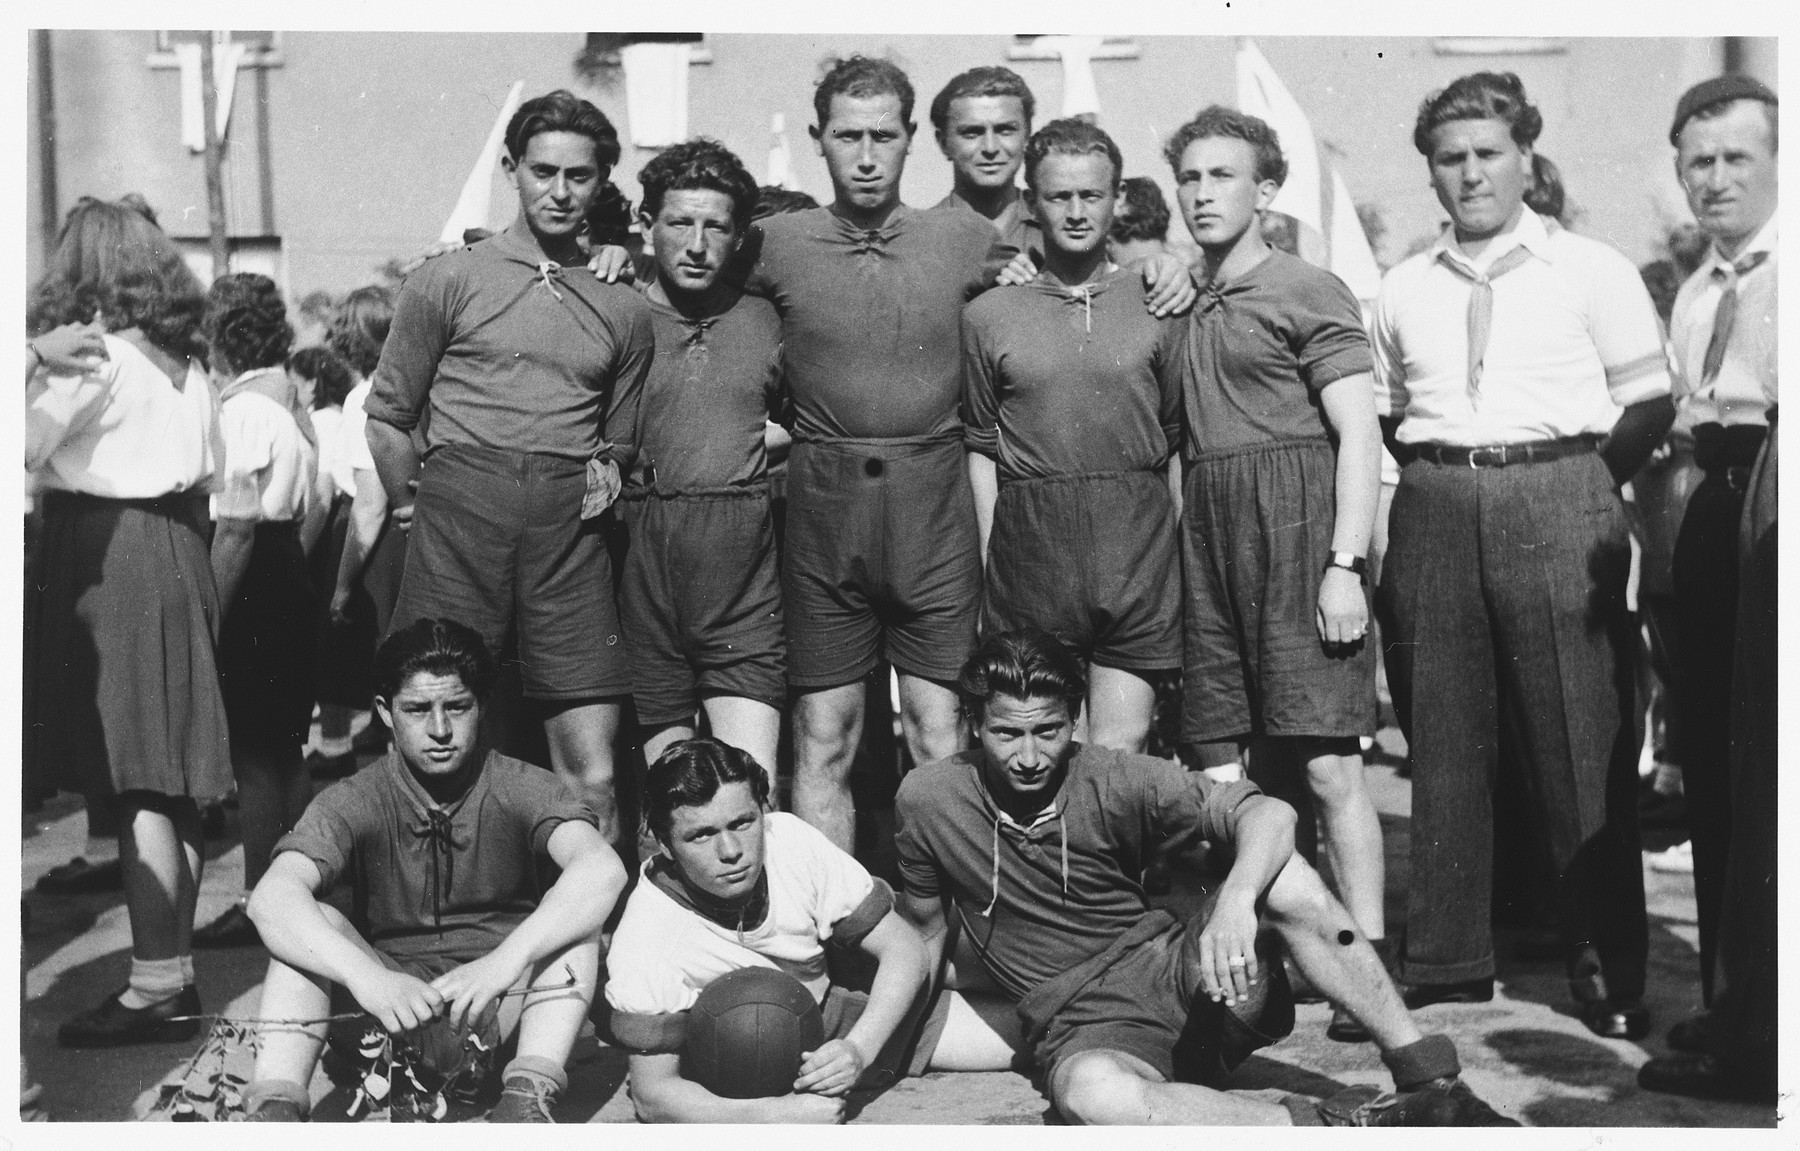 Group portrait of members of a soccer team in the Bergen-Belsen displaced persons camp.